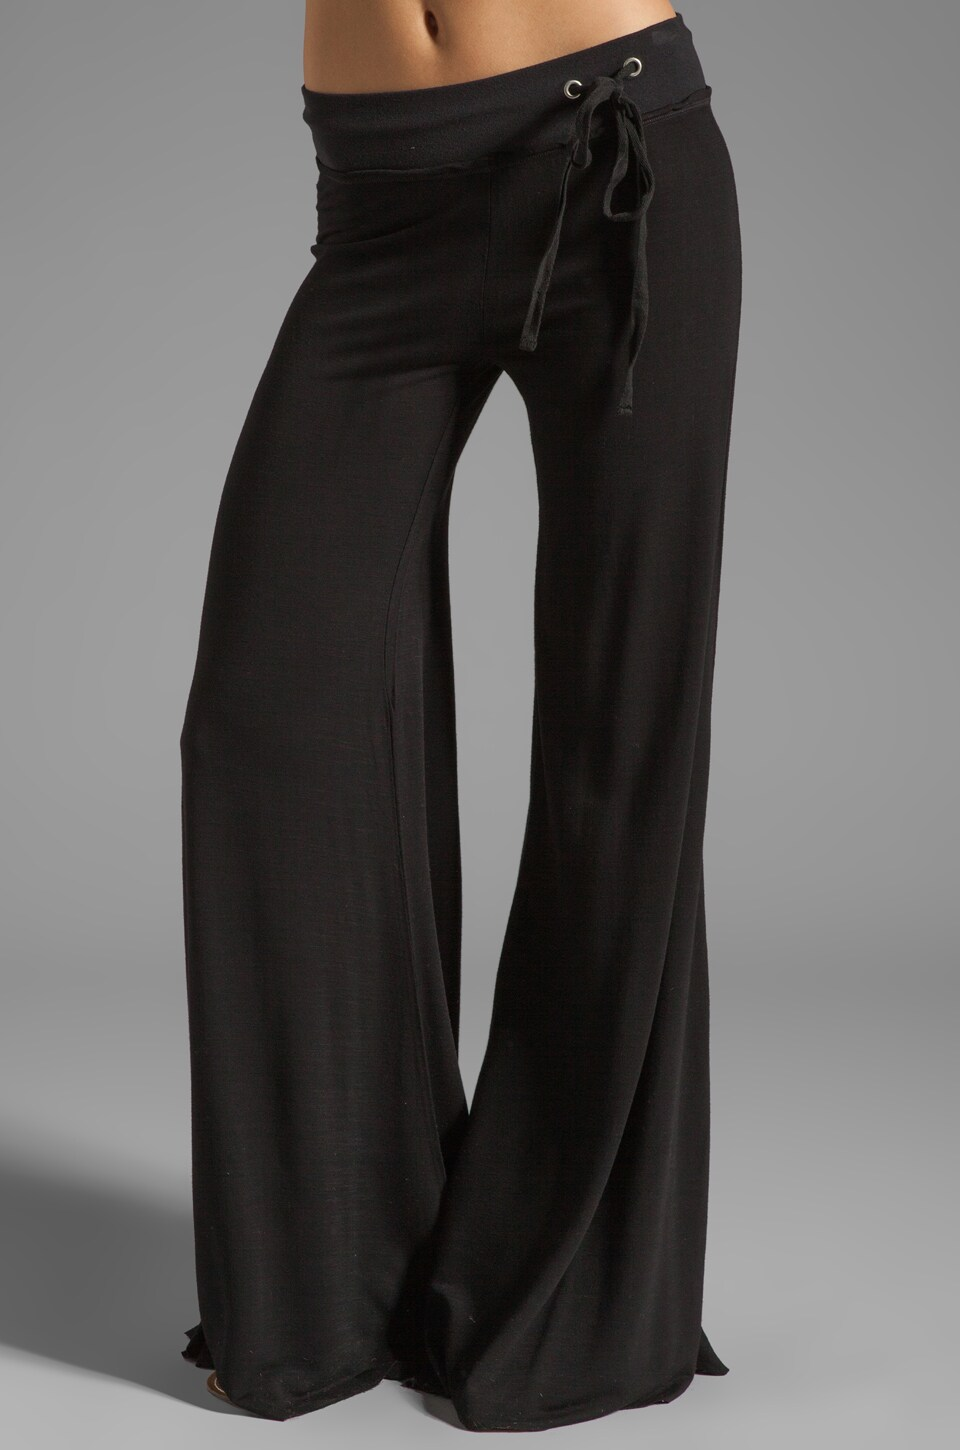 Young, Fabulous & Broke Wide Leg Pant in Black